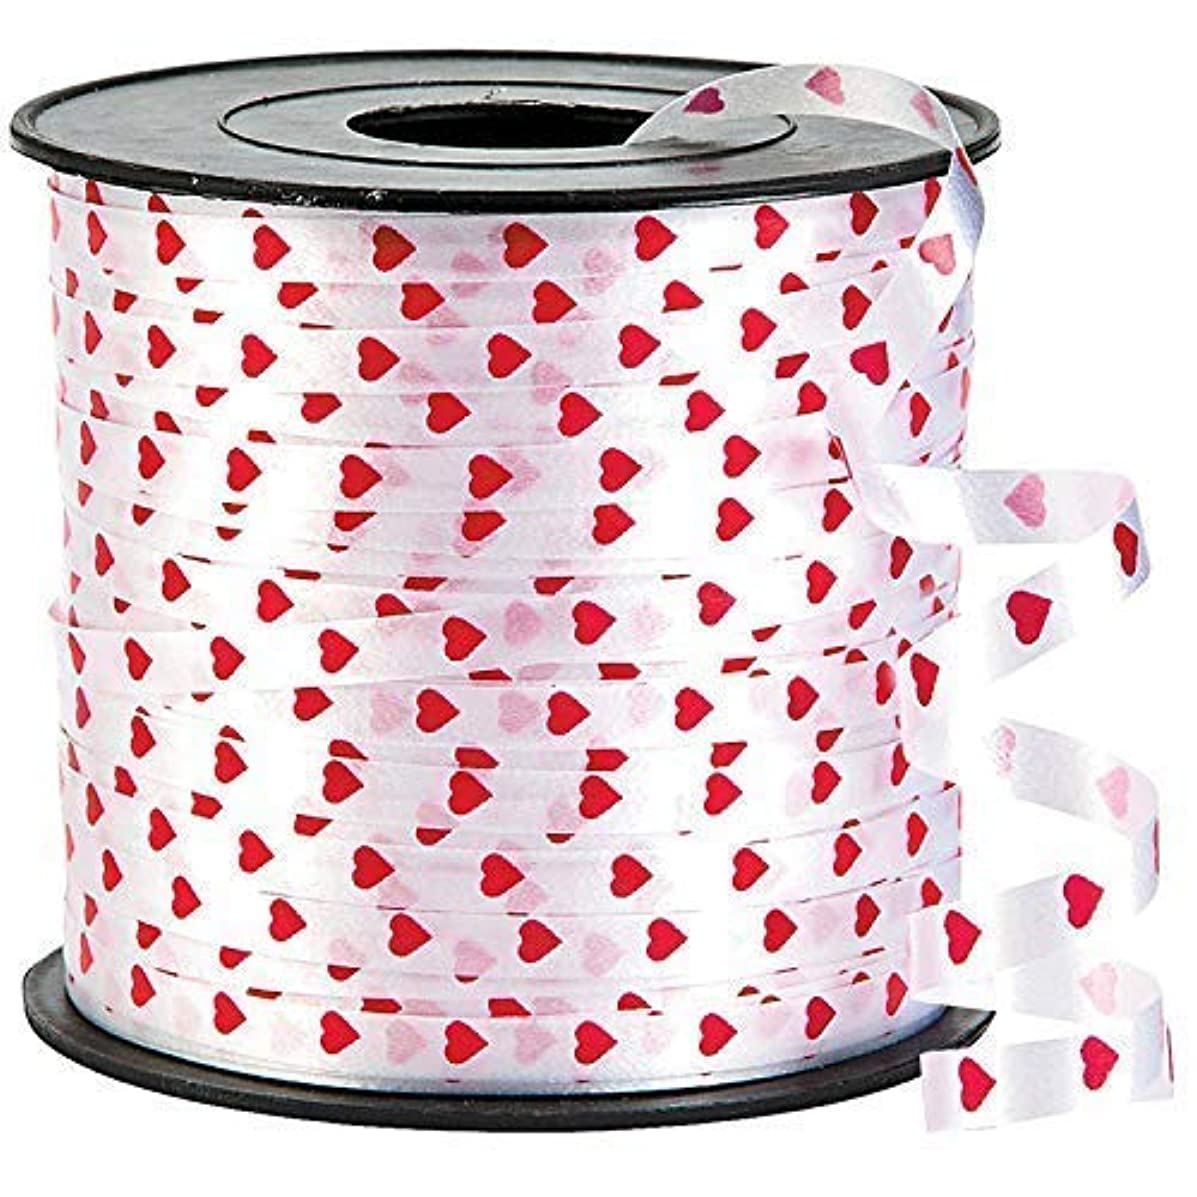 Heart Valentines Curling Gift Ribbon – 100 Yard | Valentines Day Decorations for Home, Outdoor, Office, Window, Classroom | Perfect for Balloons, Gift Wrap, Birthday Party Supplies, Crafts DIY